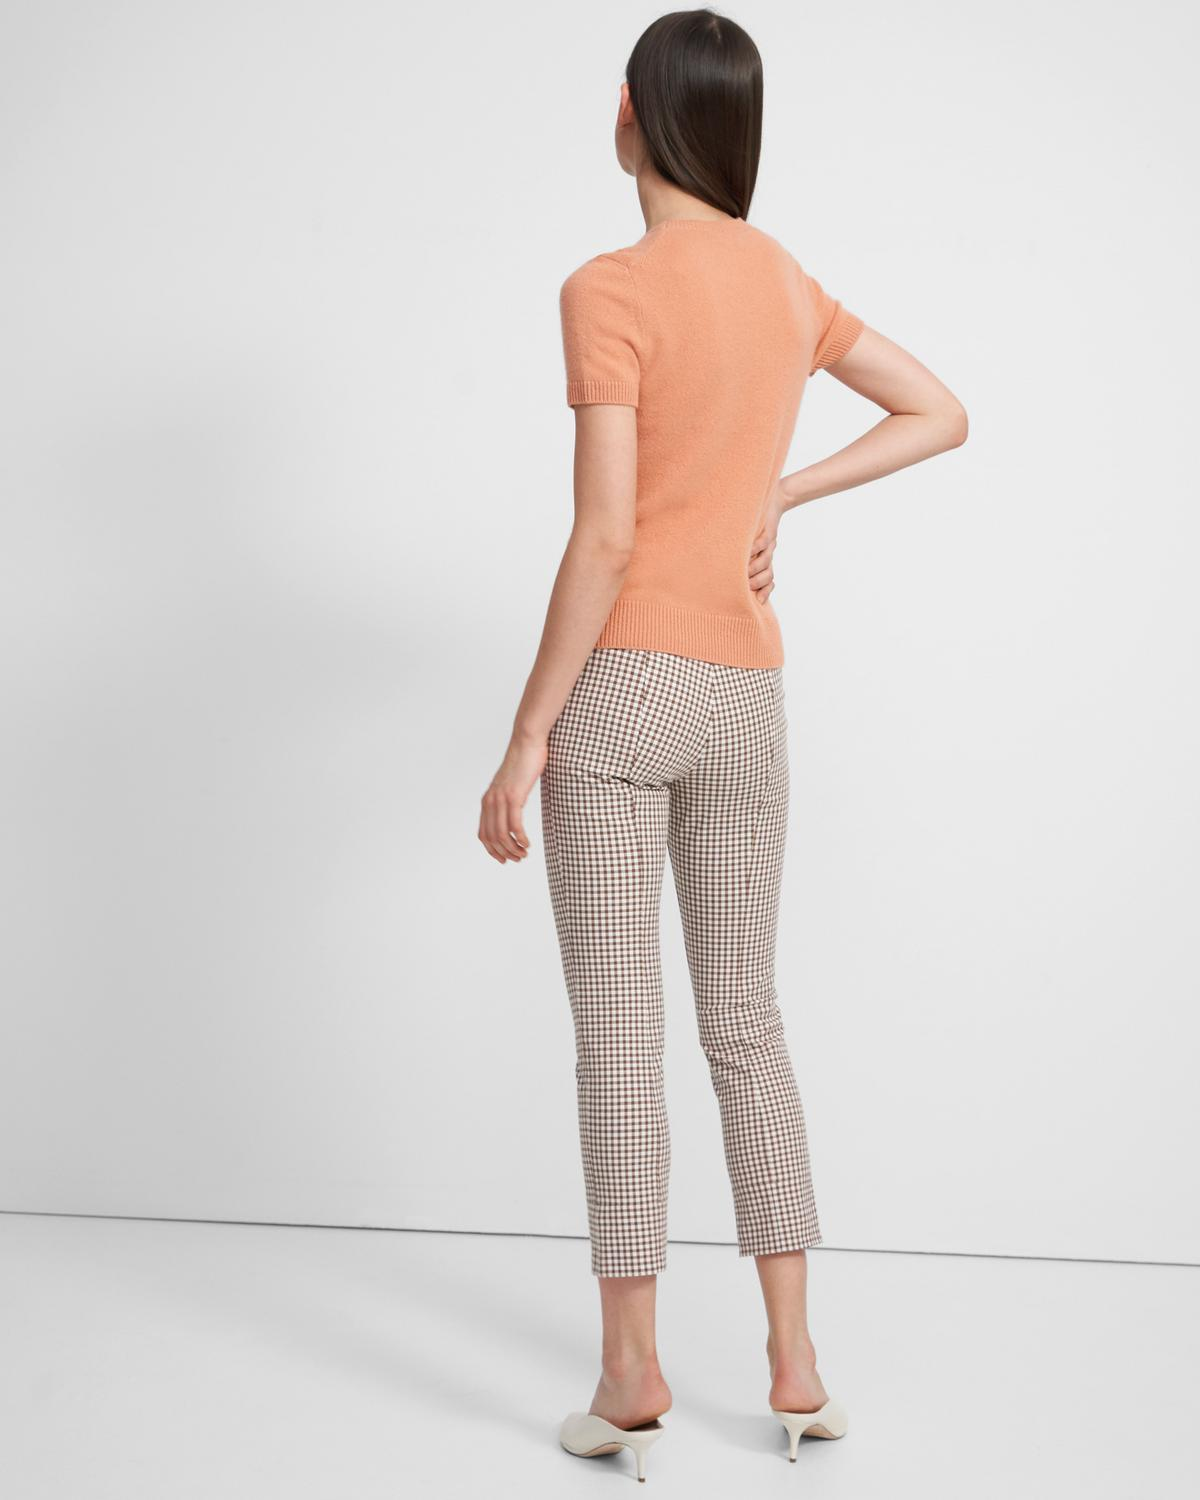 Skinny Legging in Grid Stretch Cotton